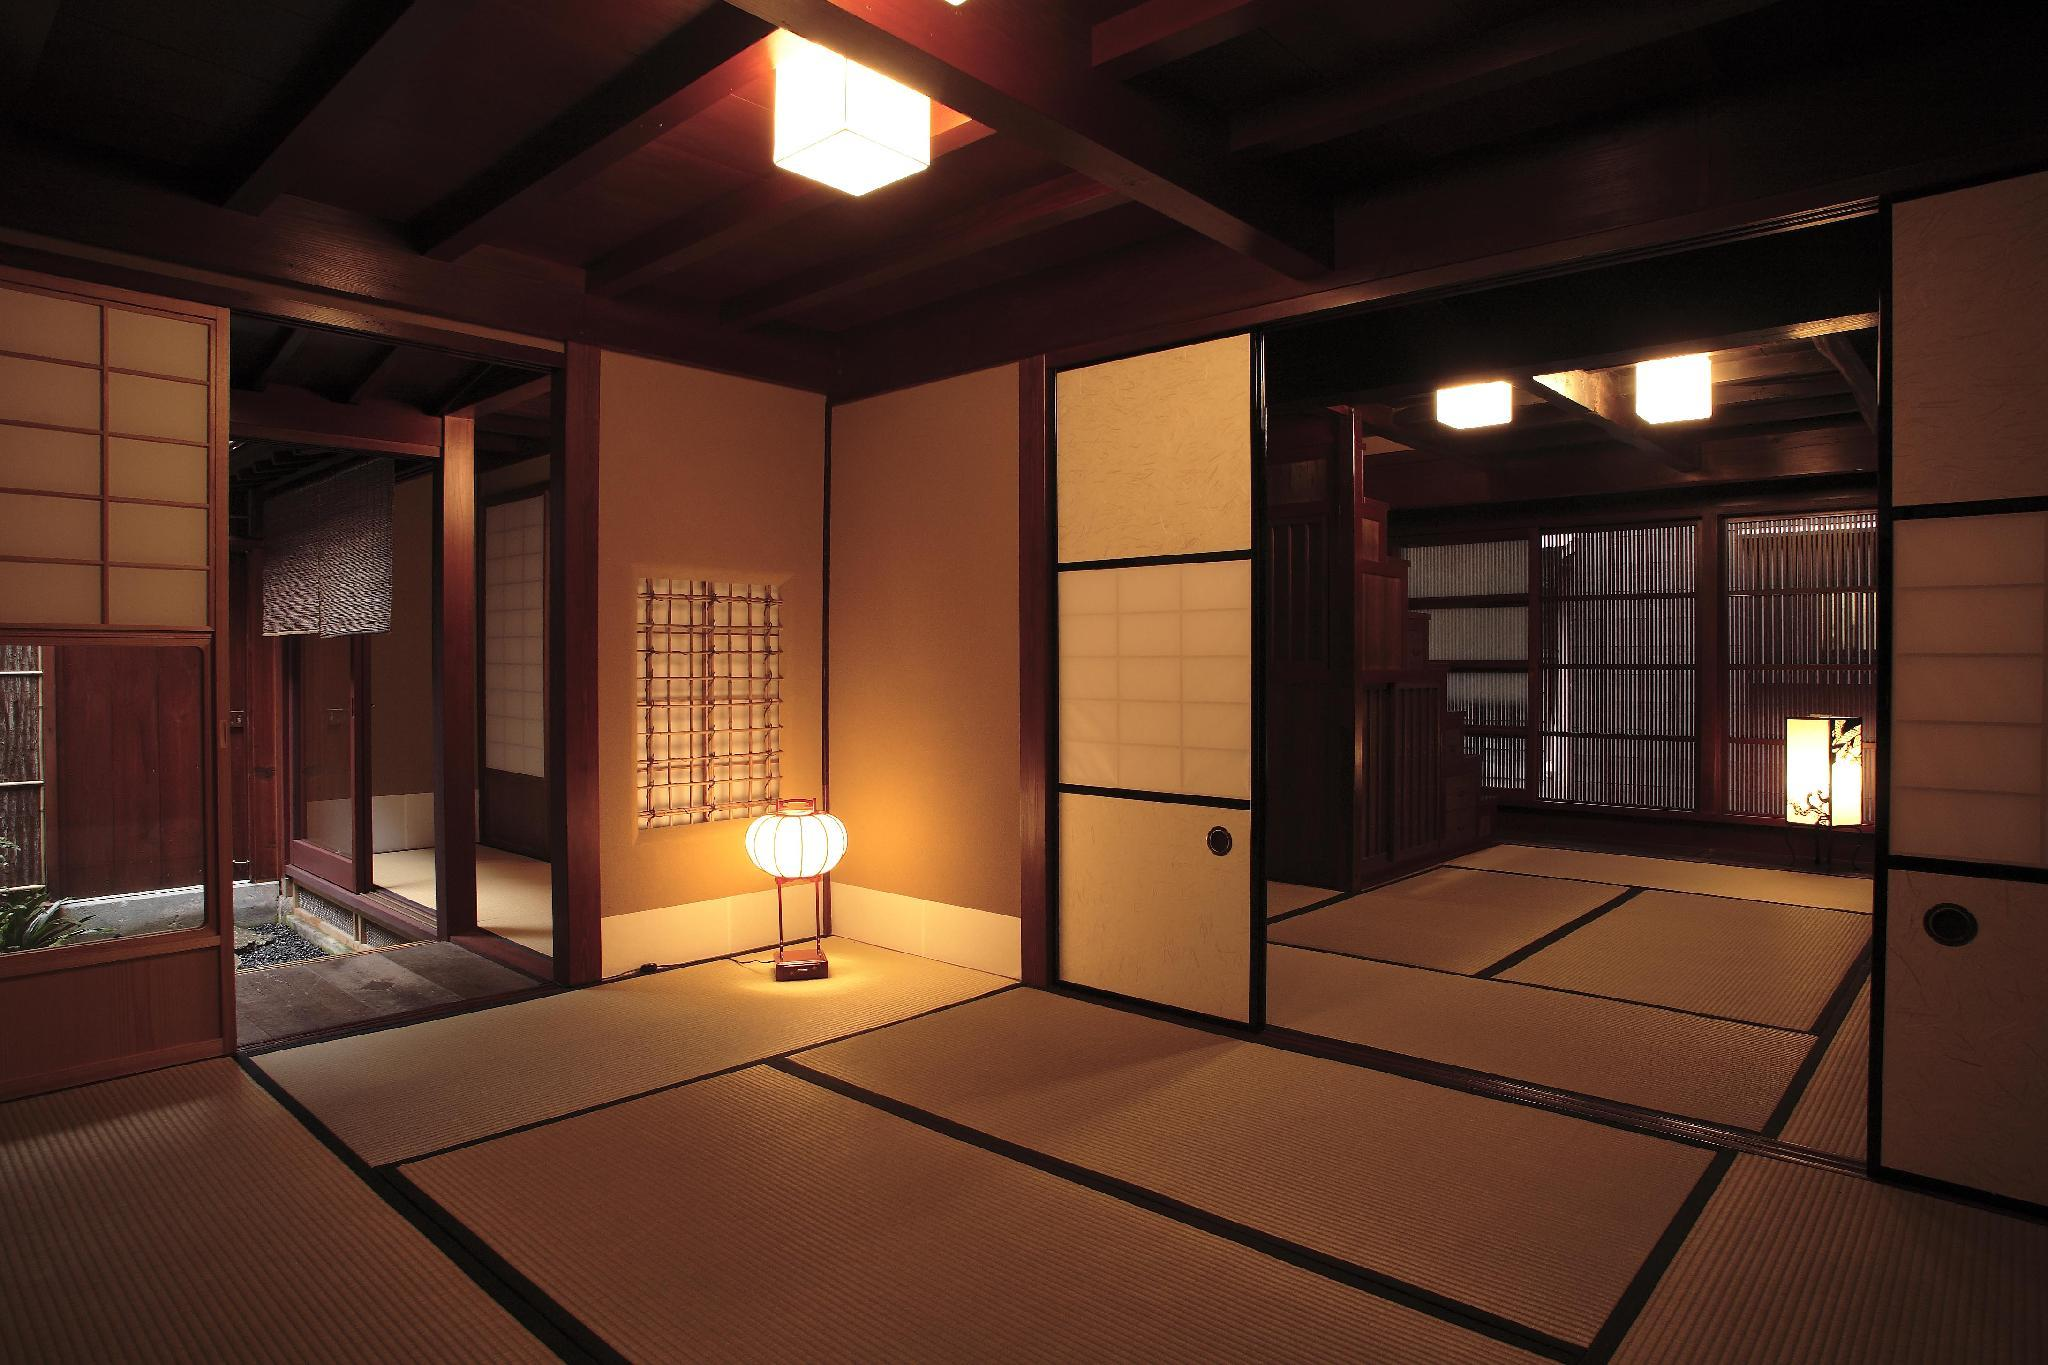 日式客房 - 可住4人 (Japanese Style Room for 4 People)